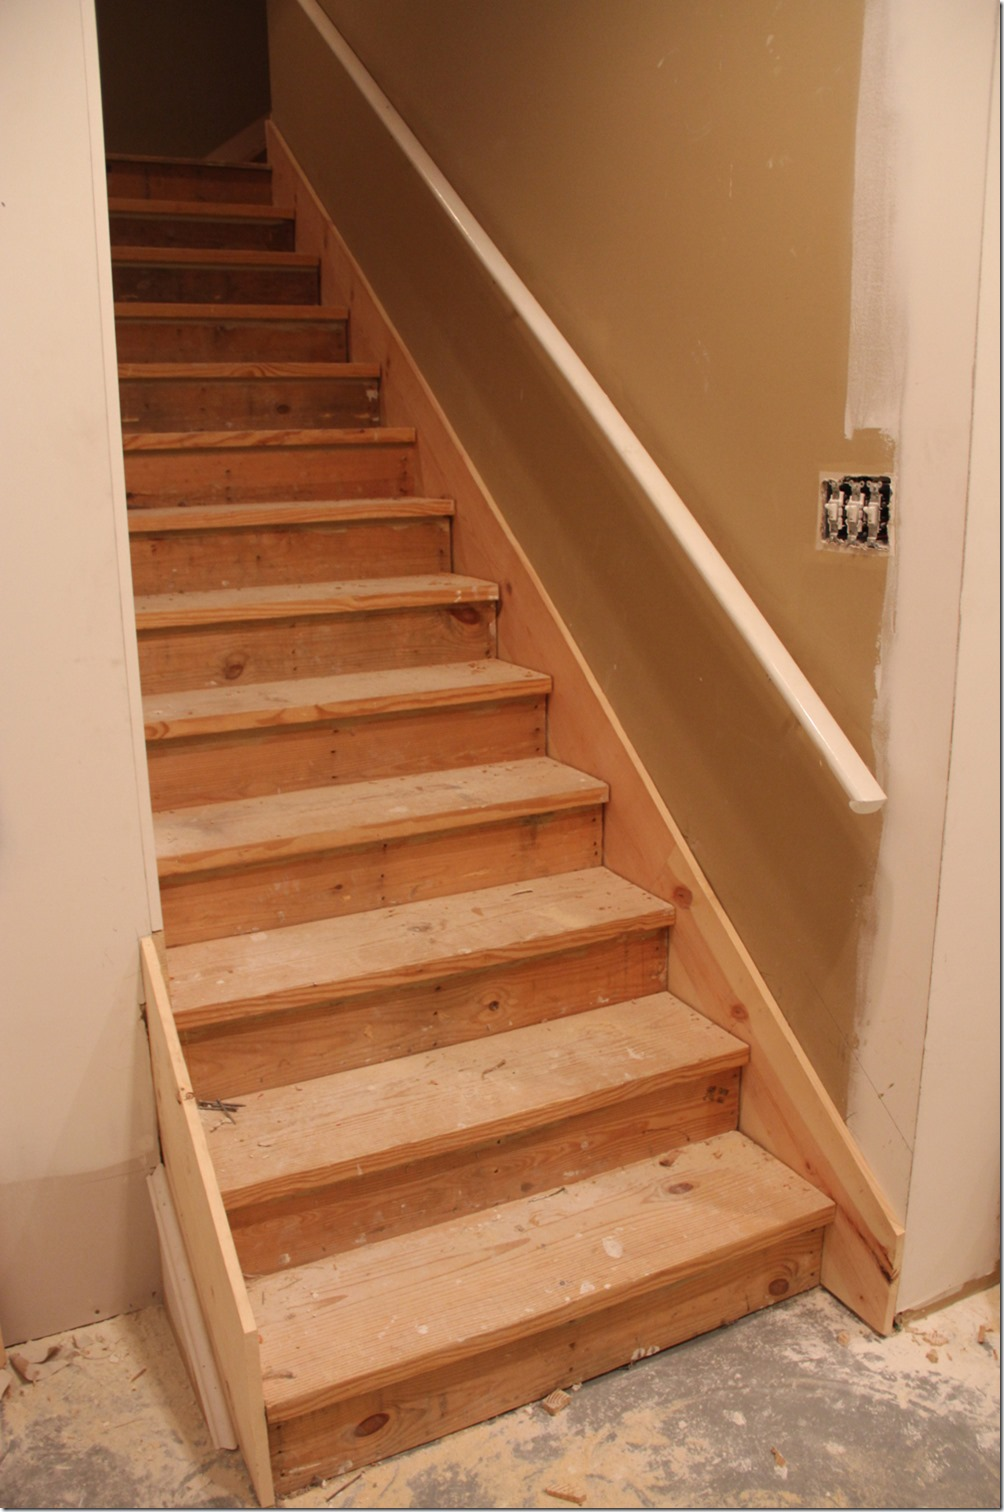 We had to pull up the carpet on the stairs, here's a picture of the project in progress.